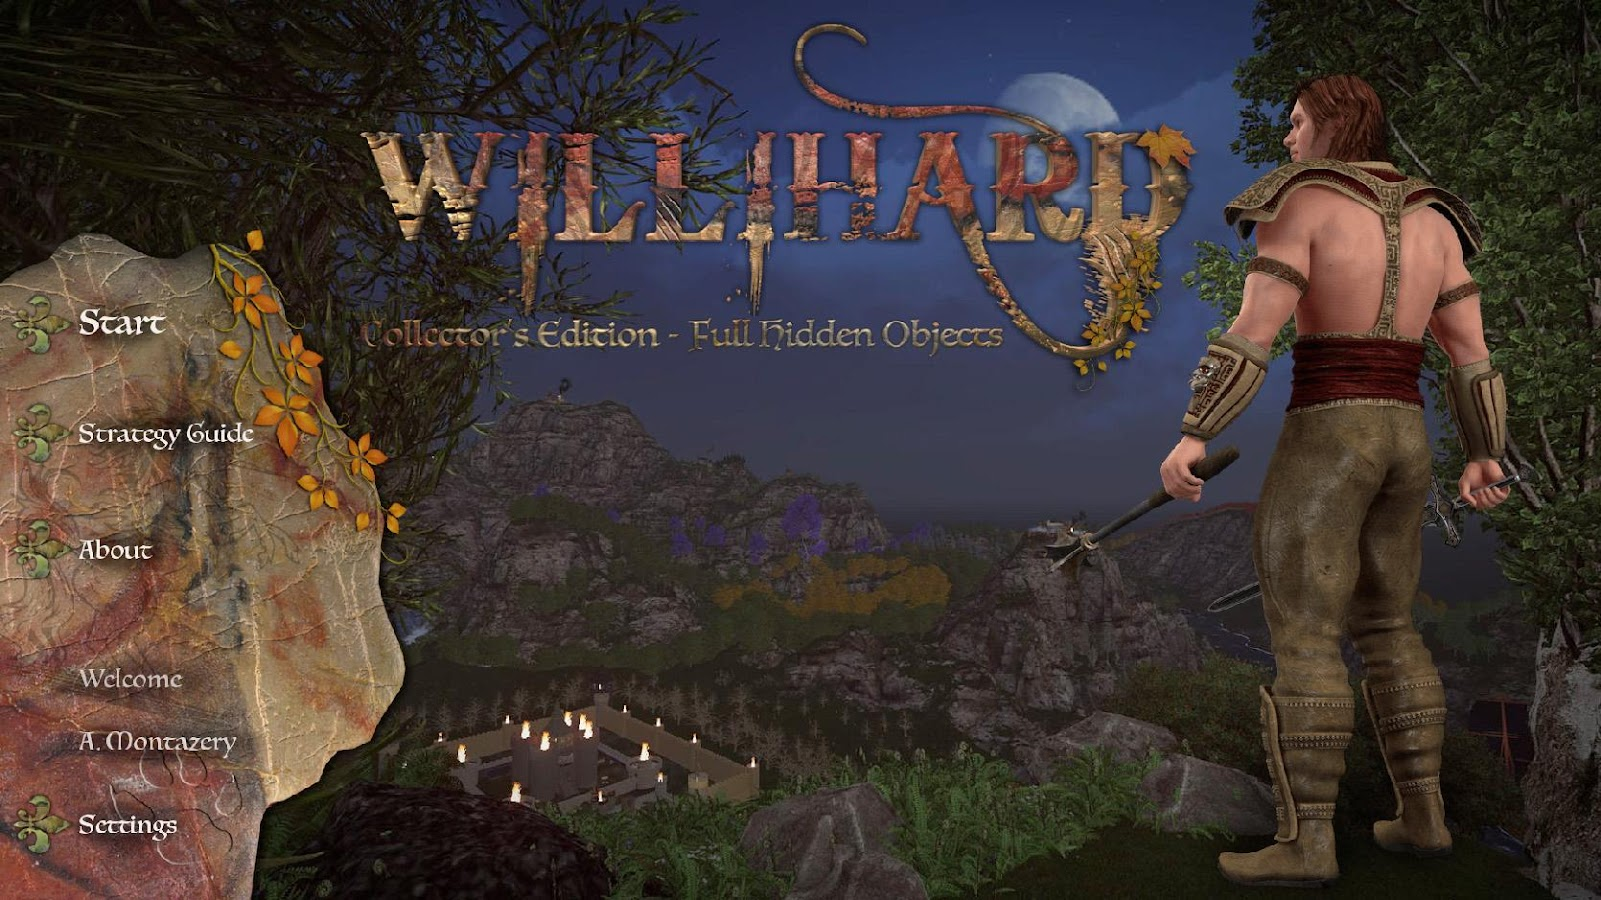 WILLIHARD (Hidden Objects) Screenshot 0